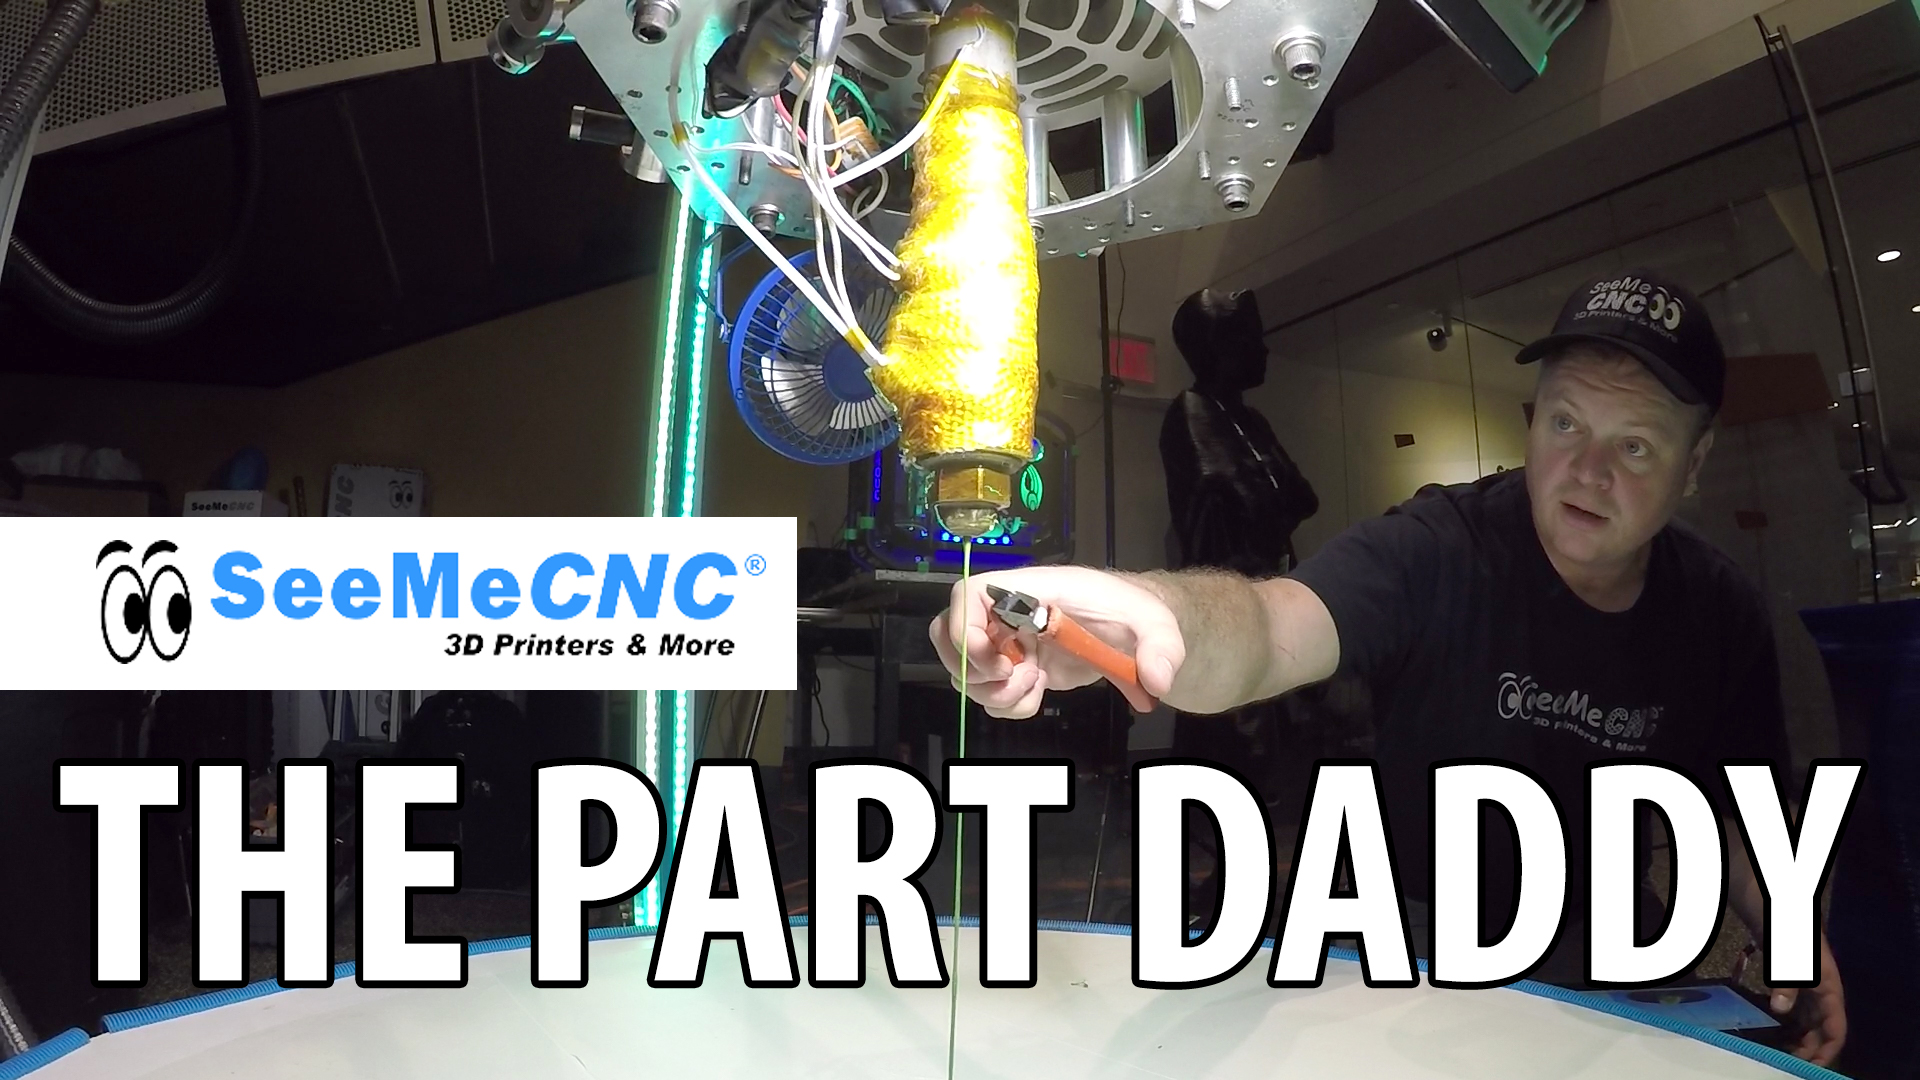 The Part Daddy 3D Printer from SeeMeCNC at Maker Faire New York #WMF16